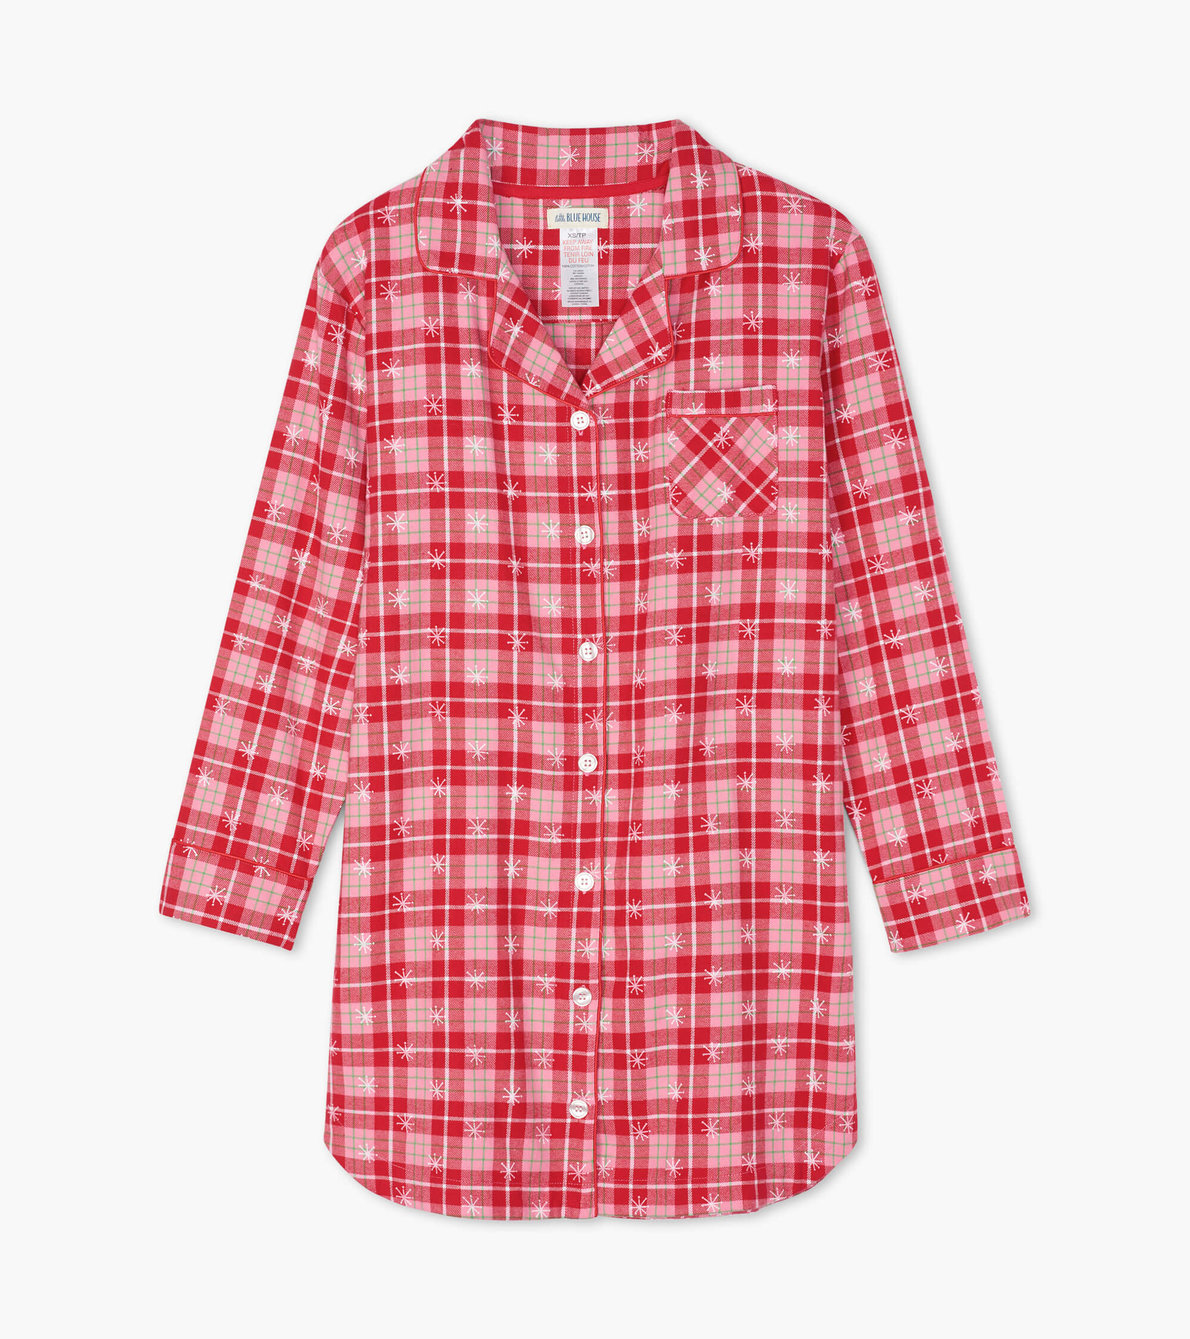 View larger image of Retro Christmas Plaid Women's Flannel Nightdress